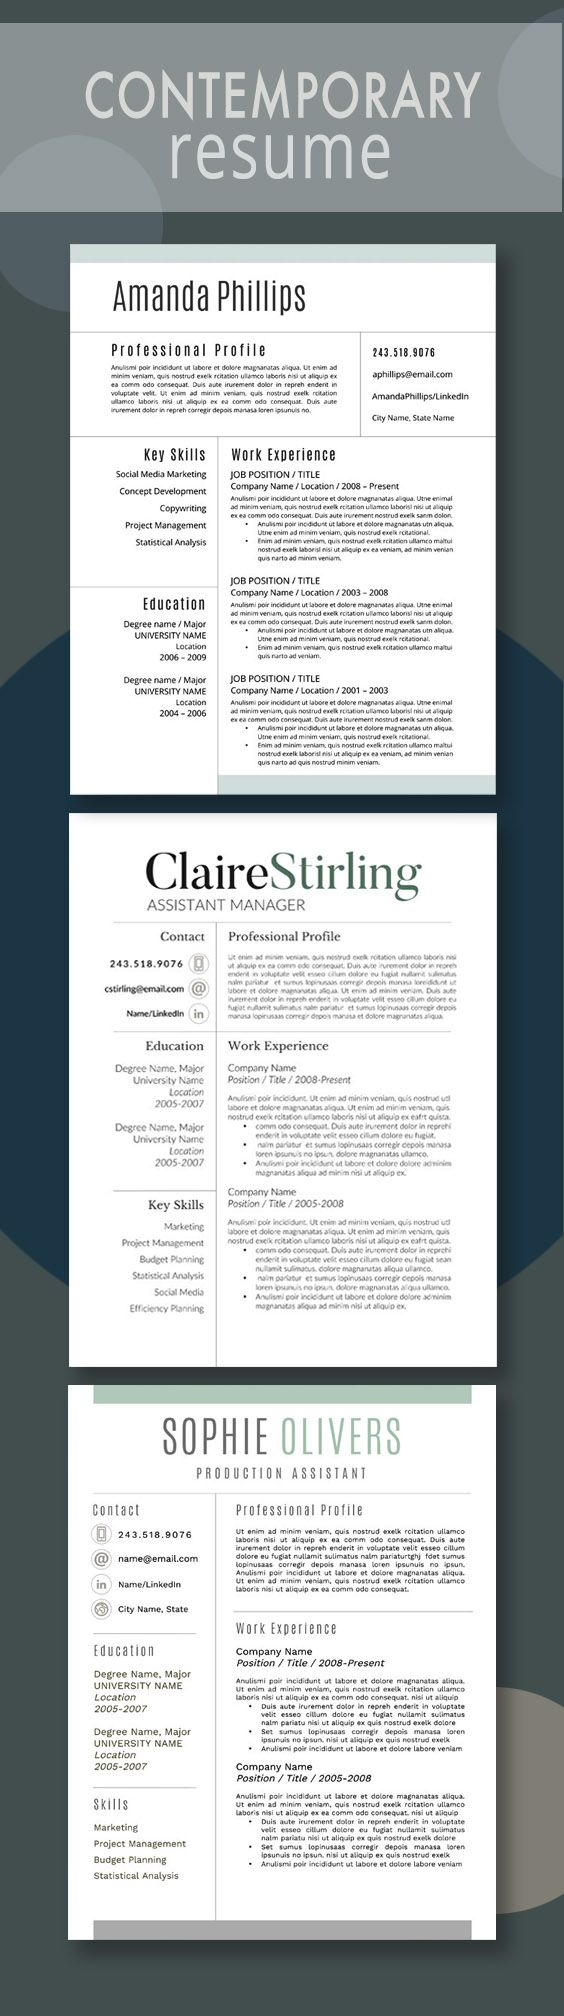 cover letter for sales manager position%0A Contemporary Resumes from Resume Foundry